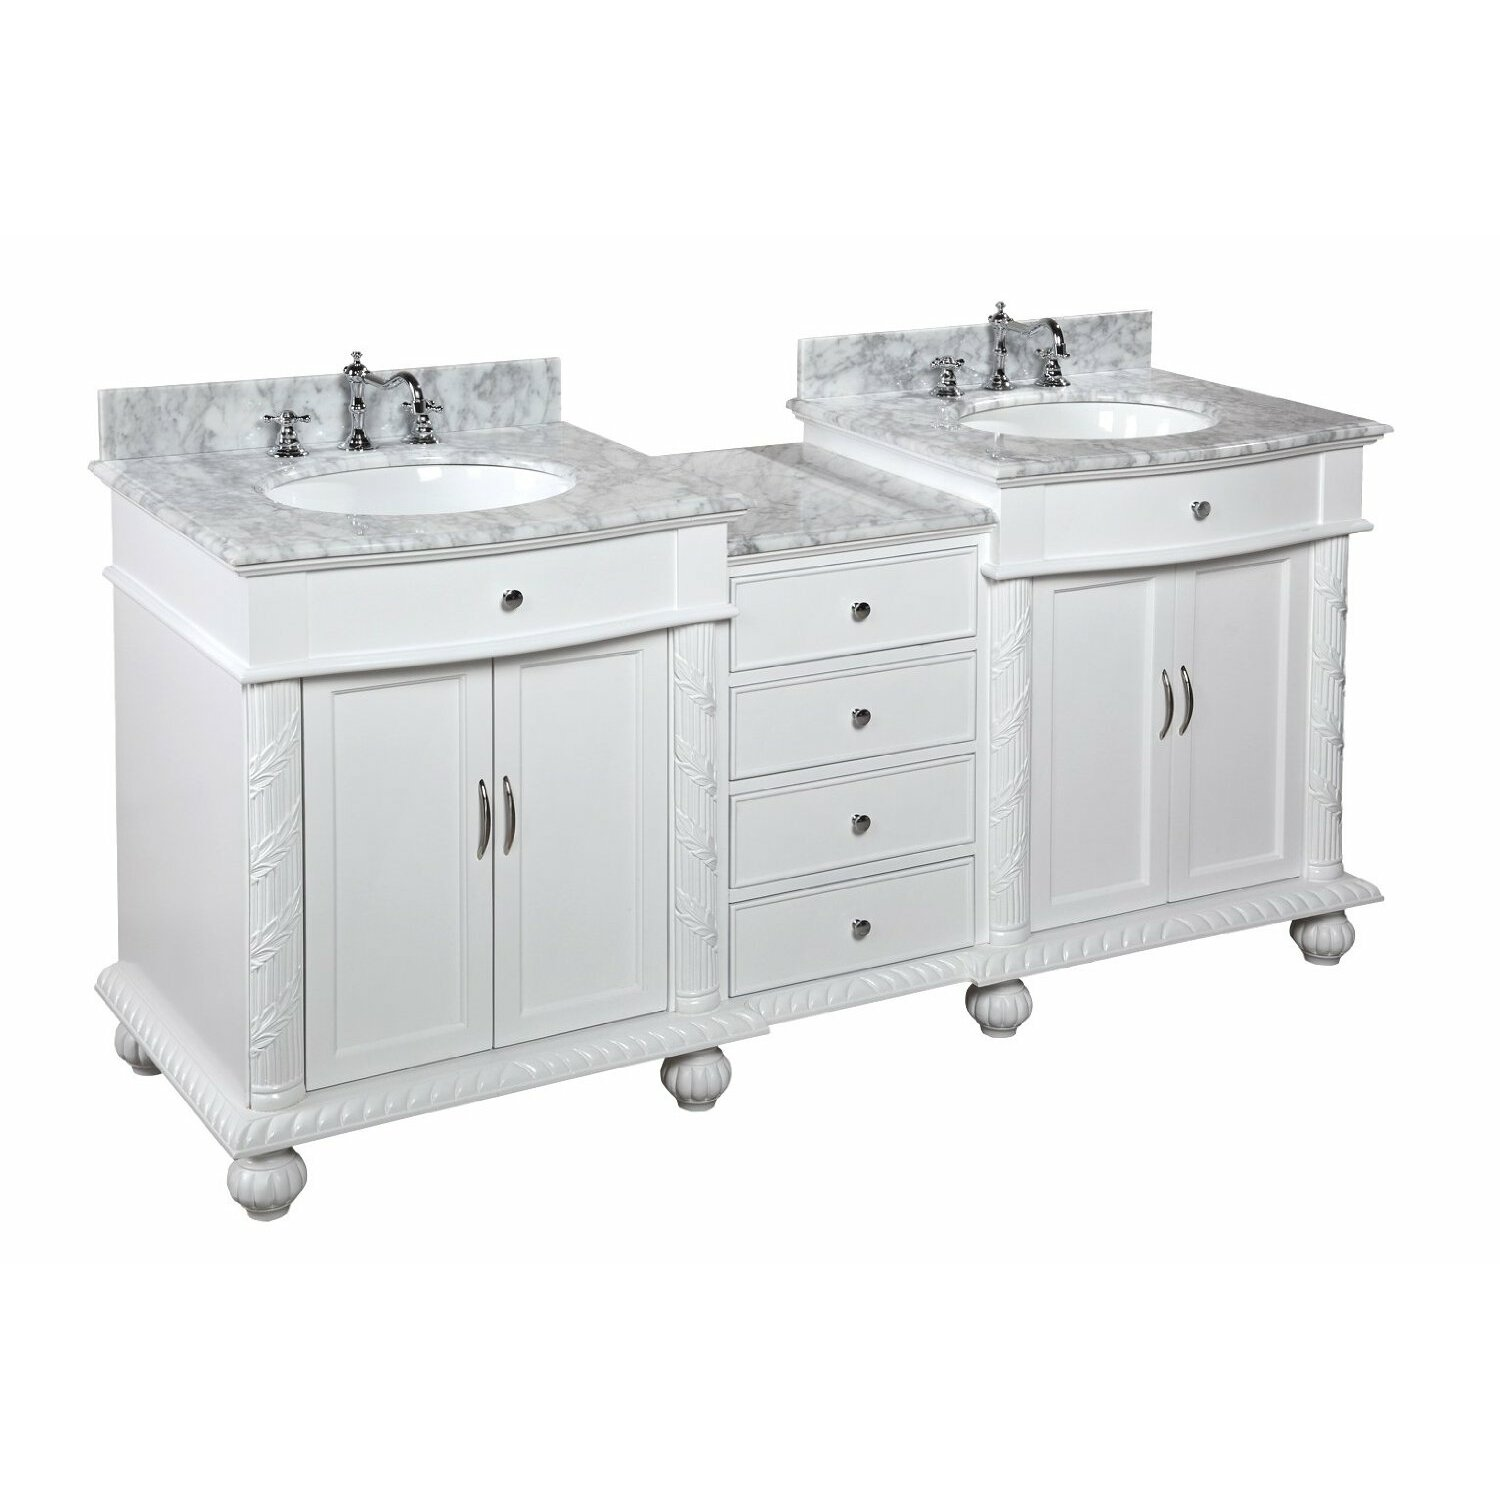 Kbc Buckingham 72 Double Bathroom Vanity Set Reviews Wayfair